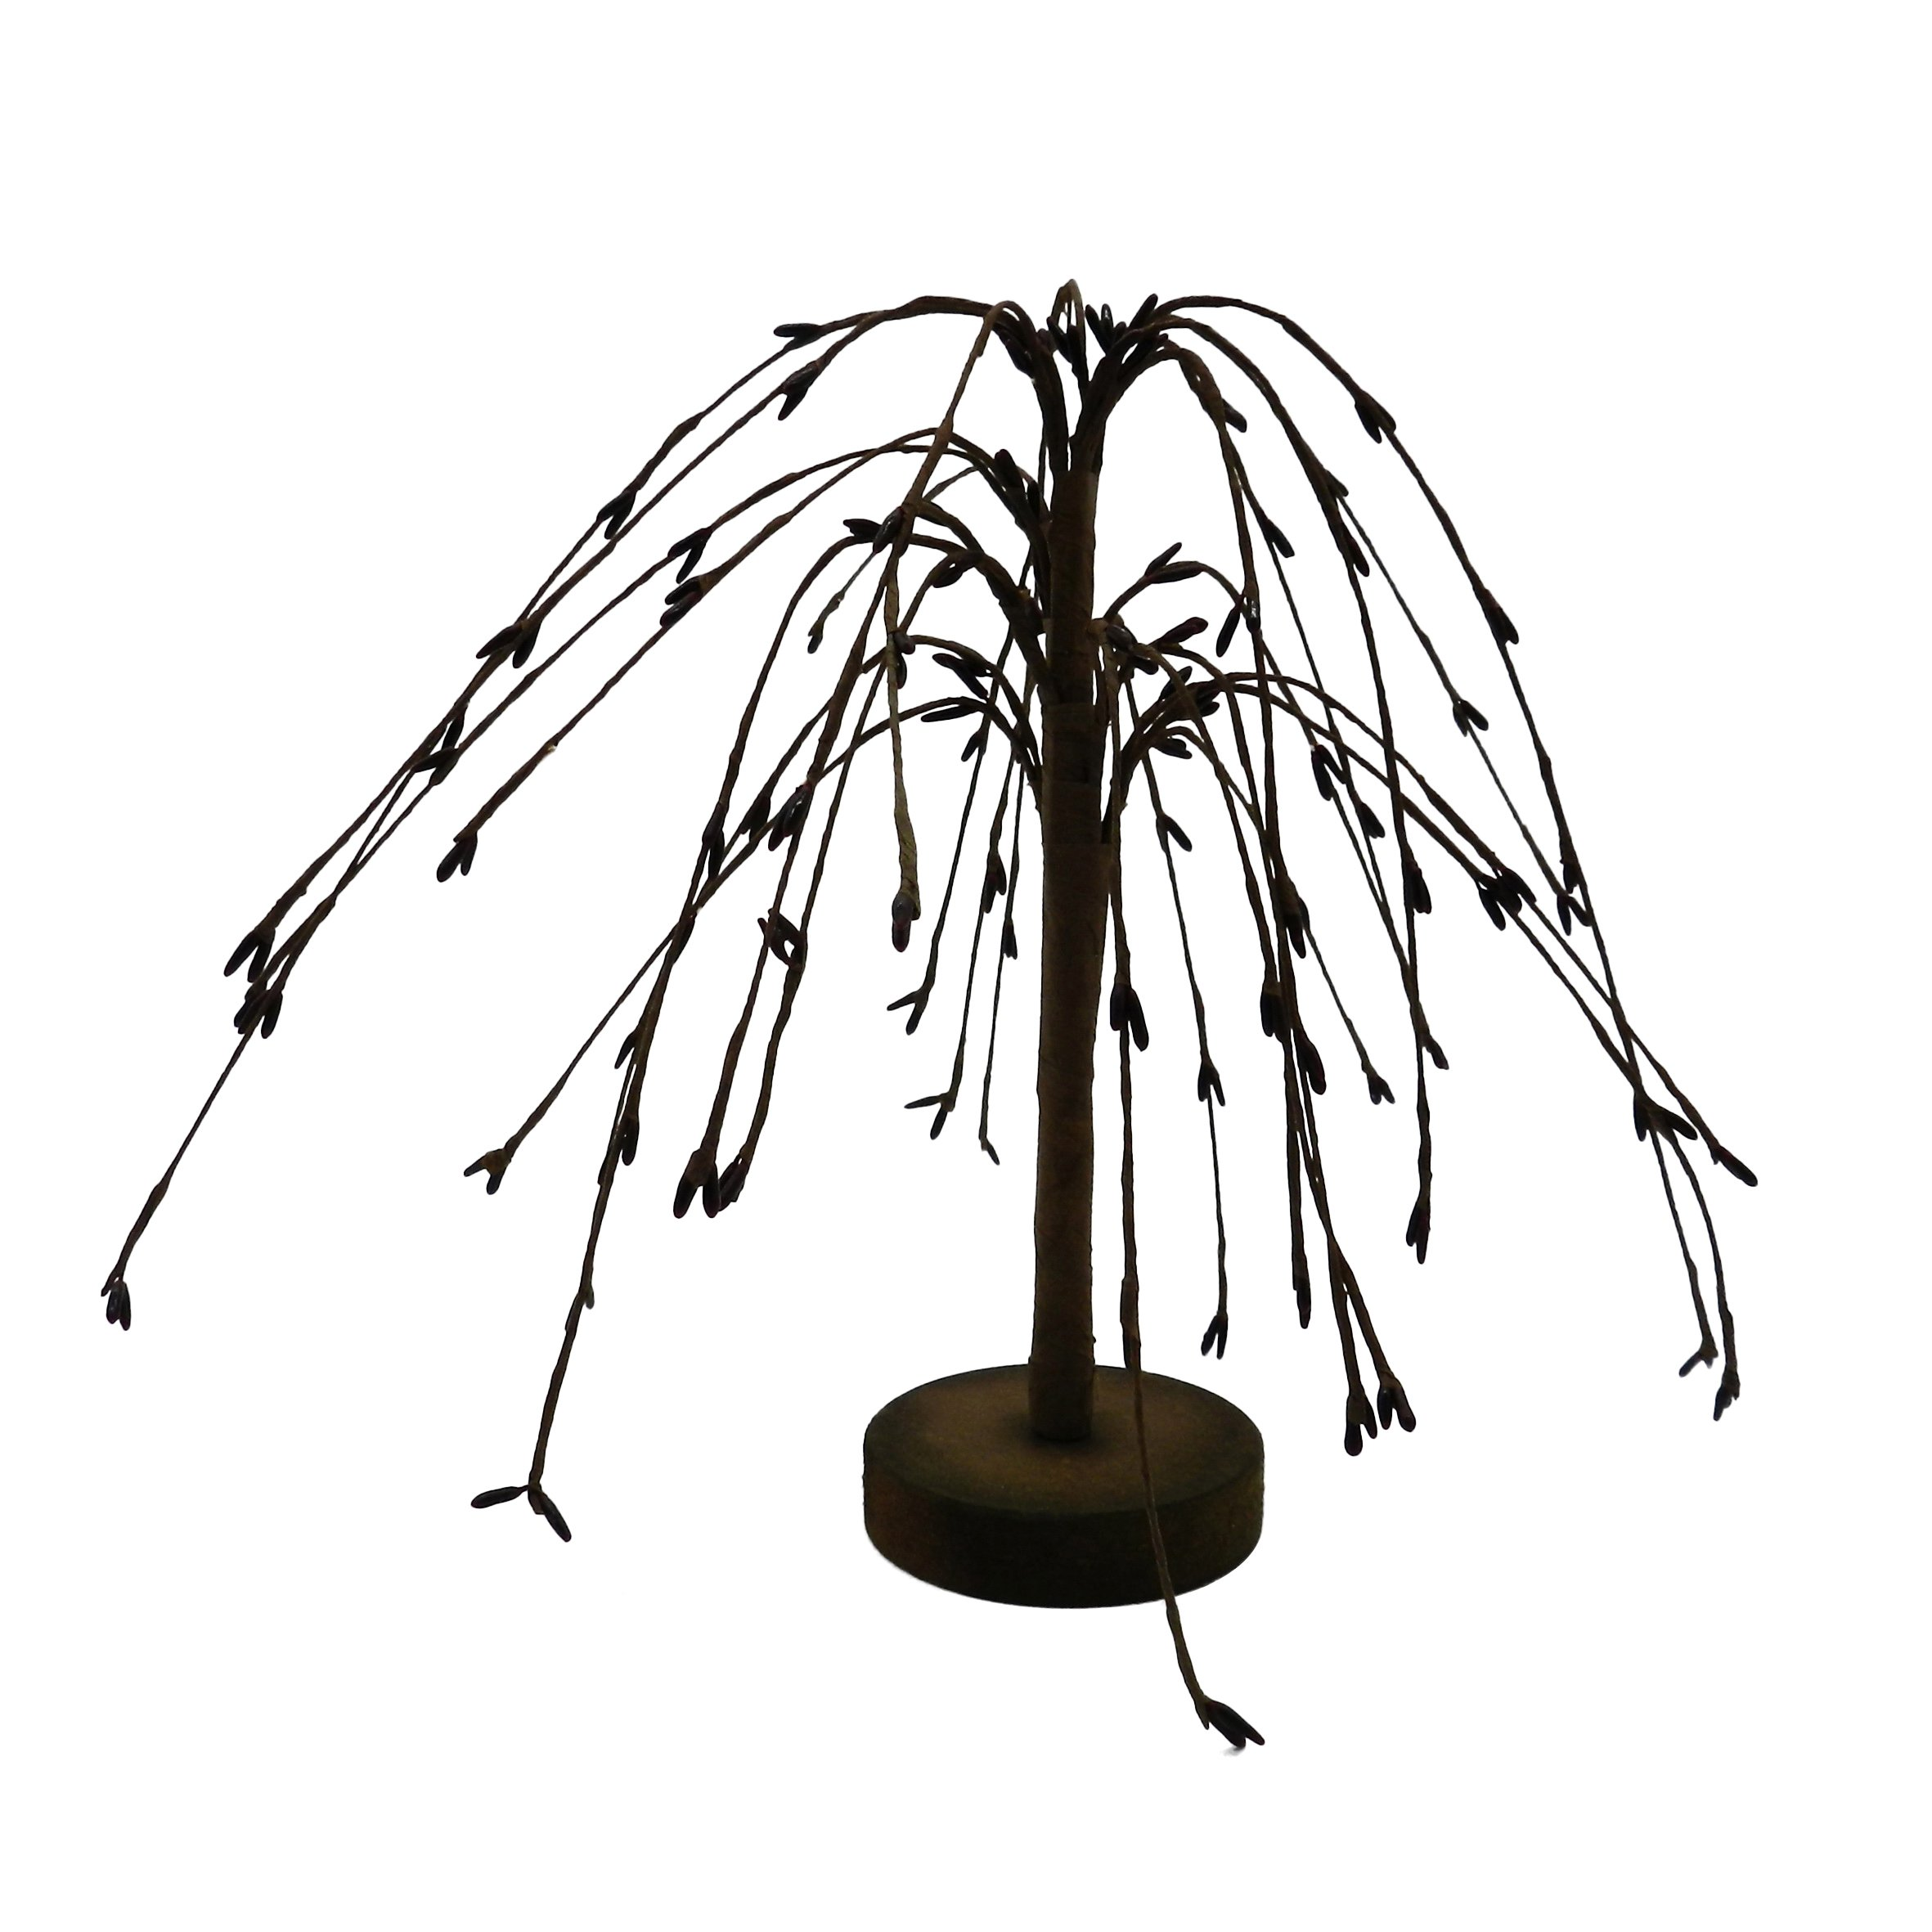 CVHOMEDECO. Burgundy Pip Berry Weeping Willow Tree Country Vintage Decoration Art, 7-Inch